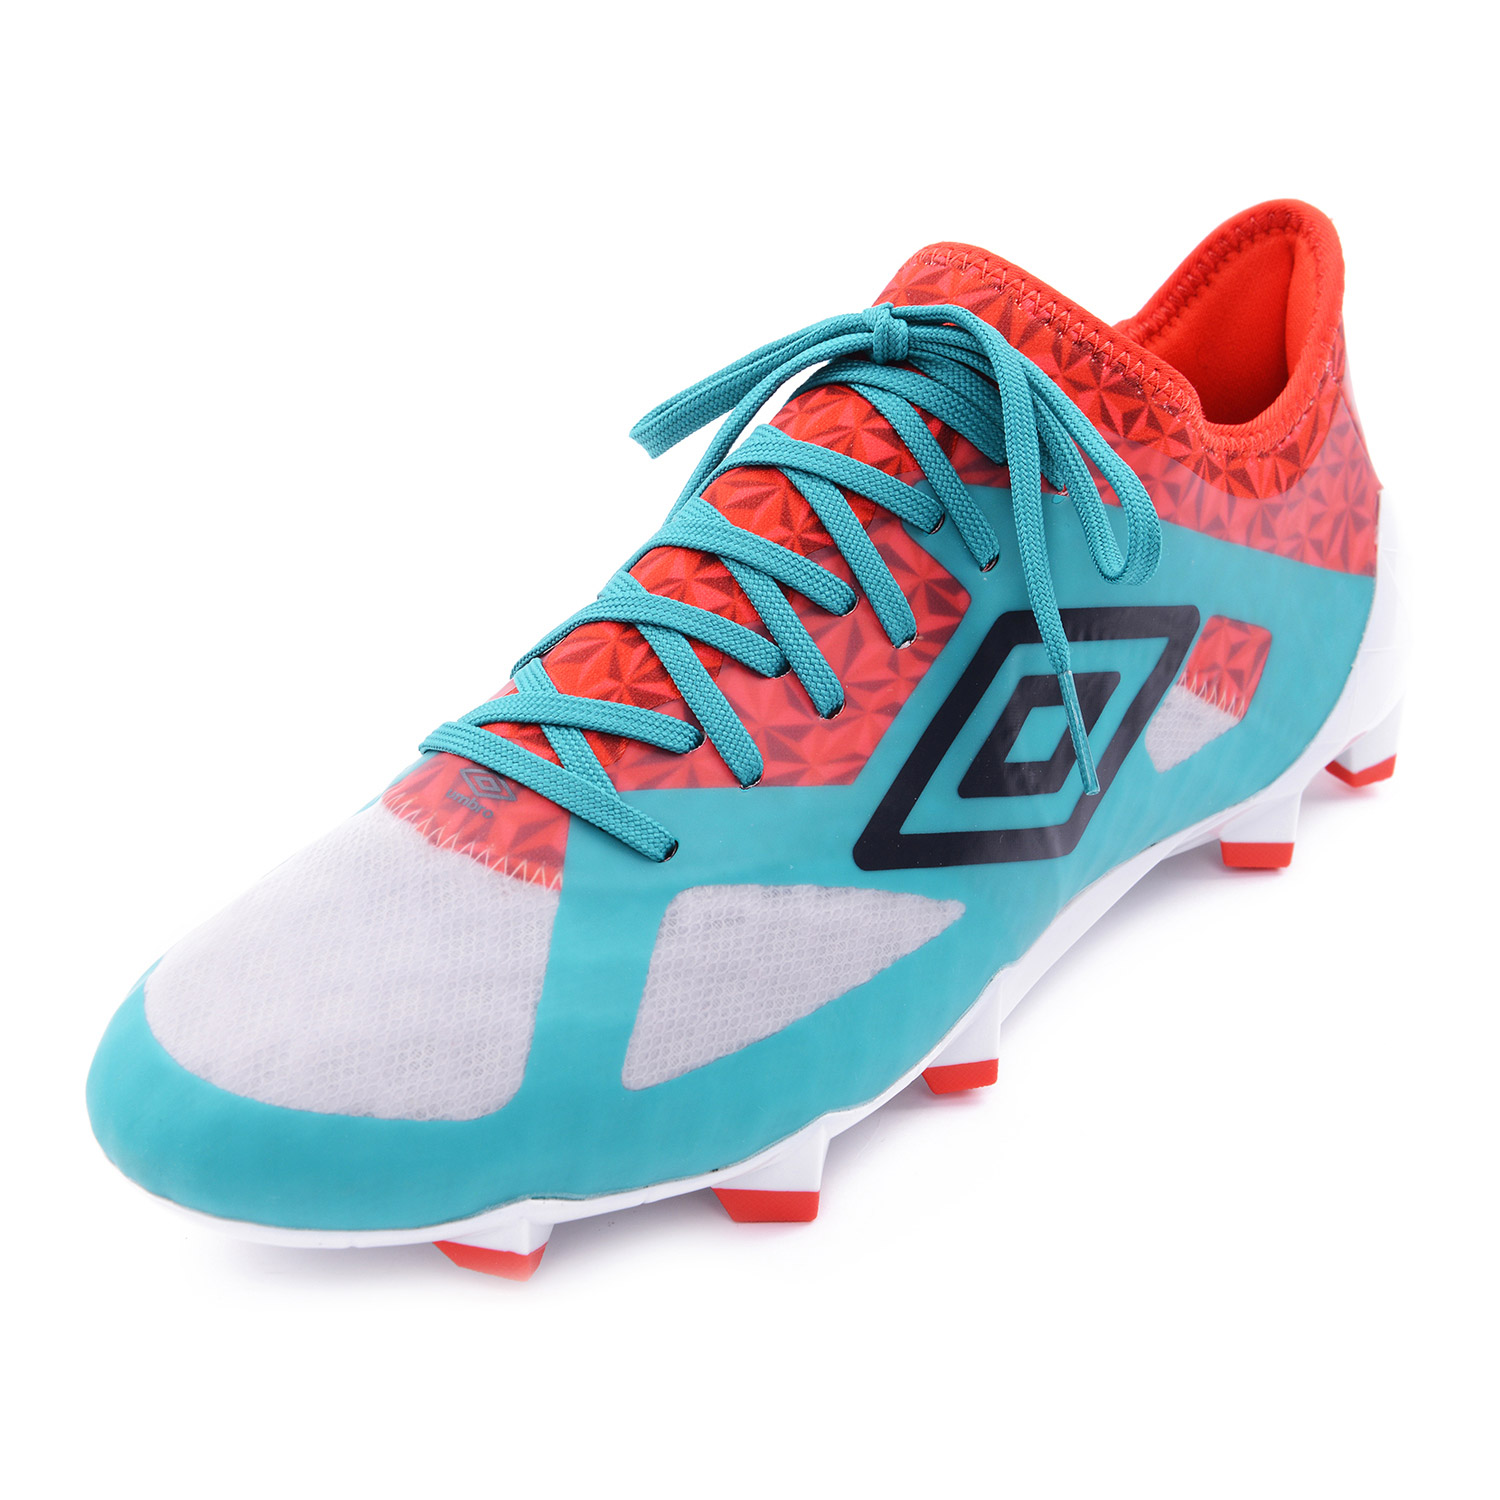 4f706557f54b9 Umbro Men s 2017 Soccer Shoes Football Sports Velocita Zapatos De Futbol  Shoes For Soccer Professional soccer shoes UCC90151-in Soccer Shoes from  Sports ...